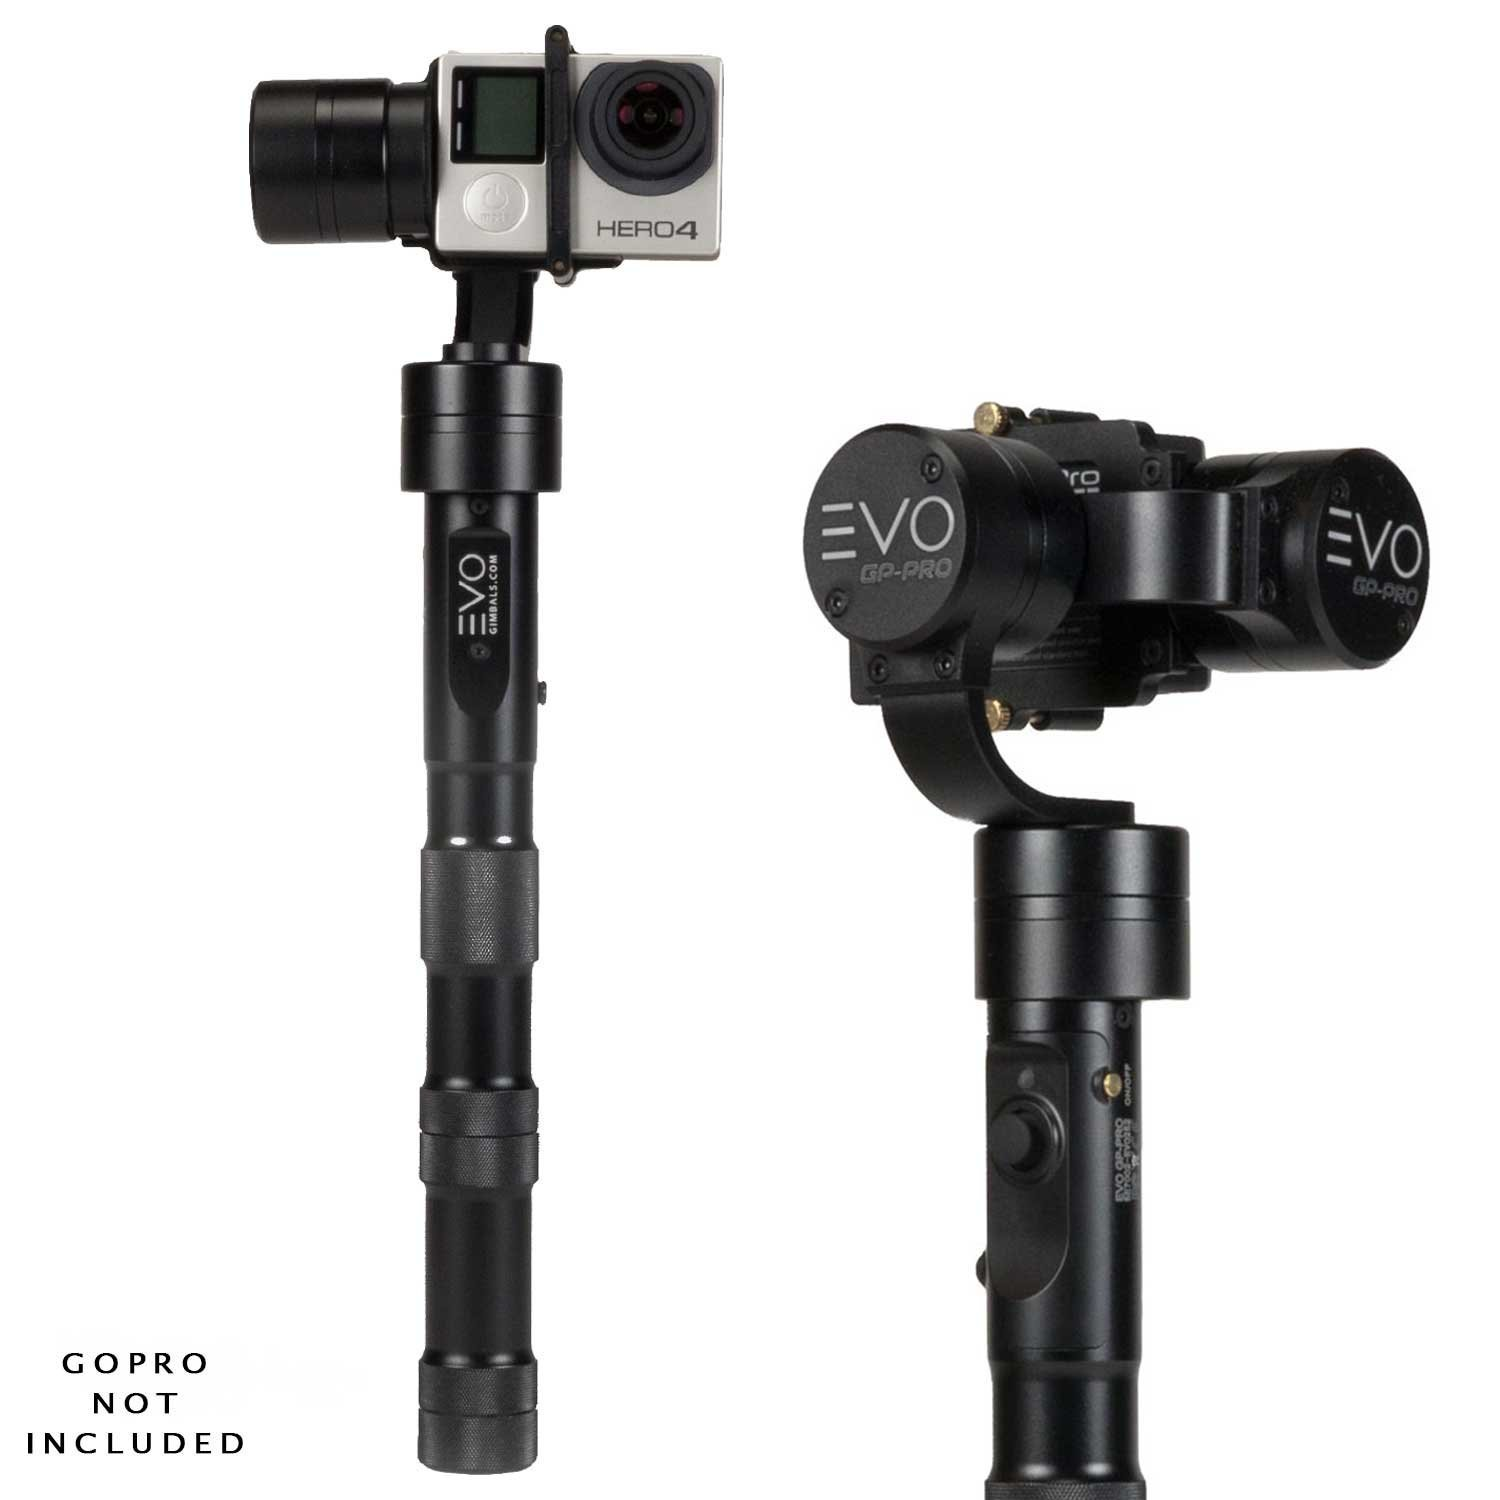 Top 10 Best GoPro Stabilizers of 2017